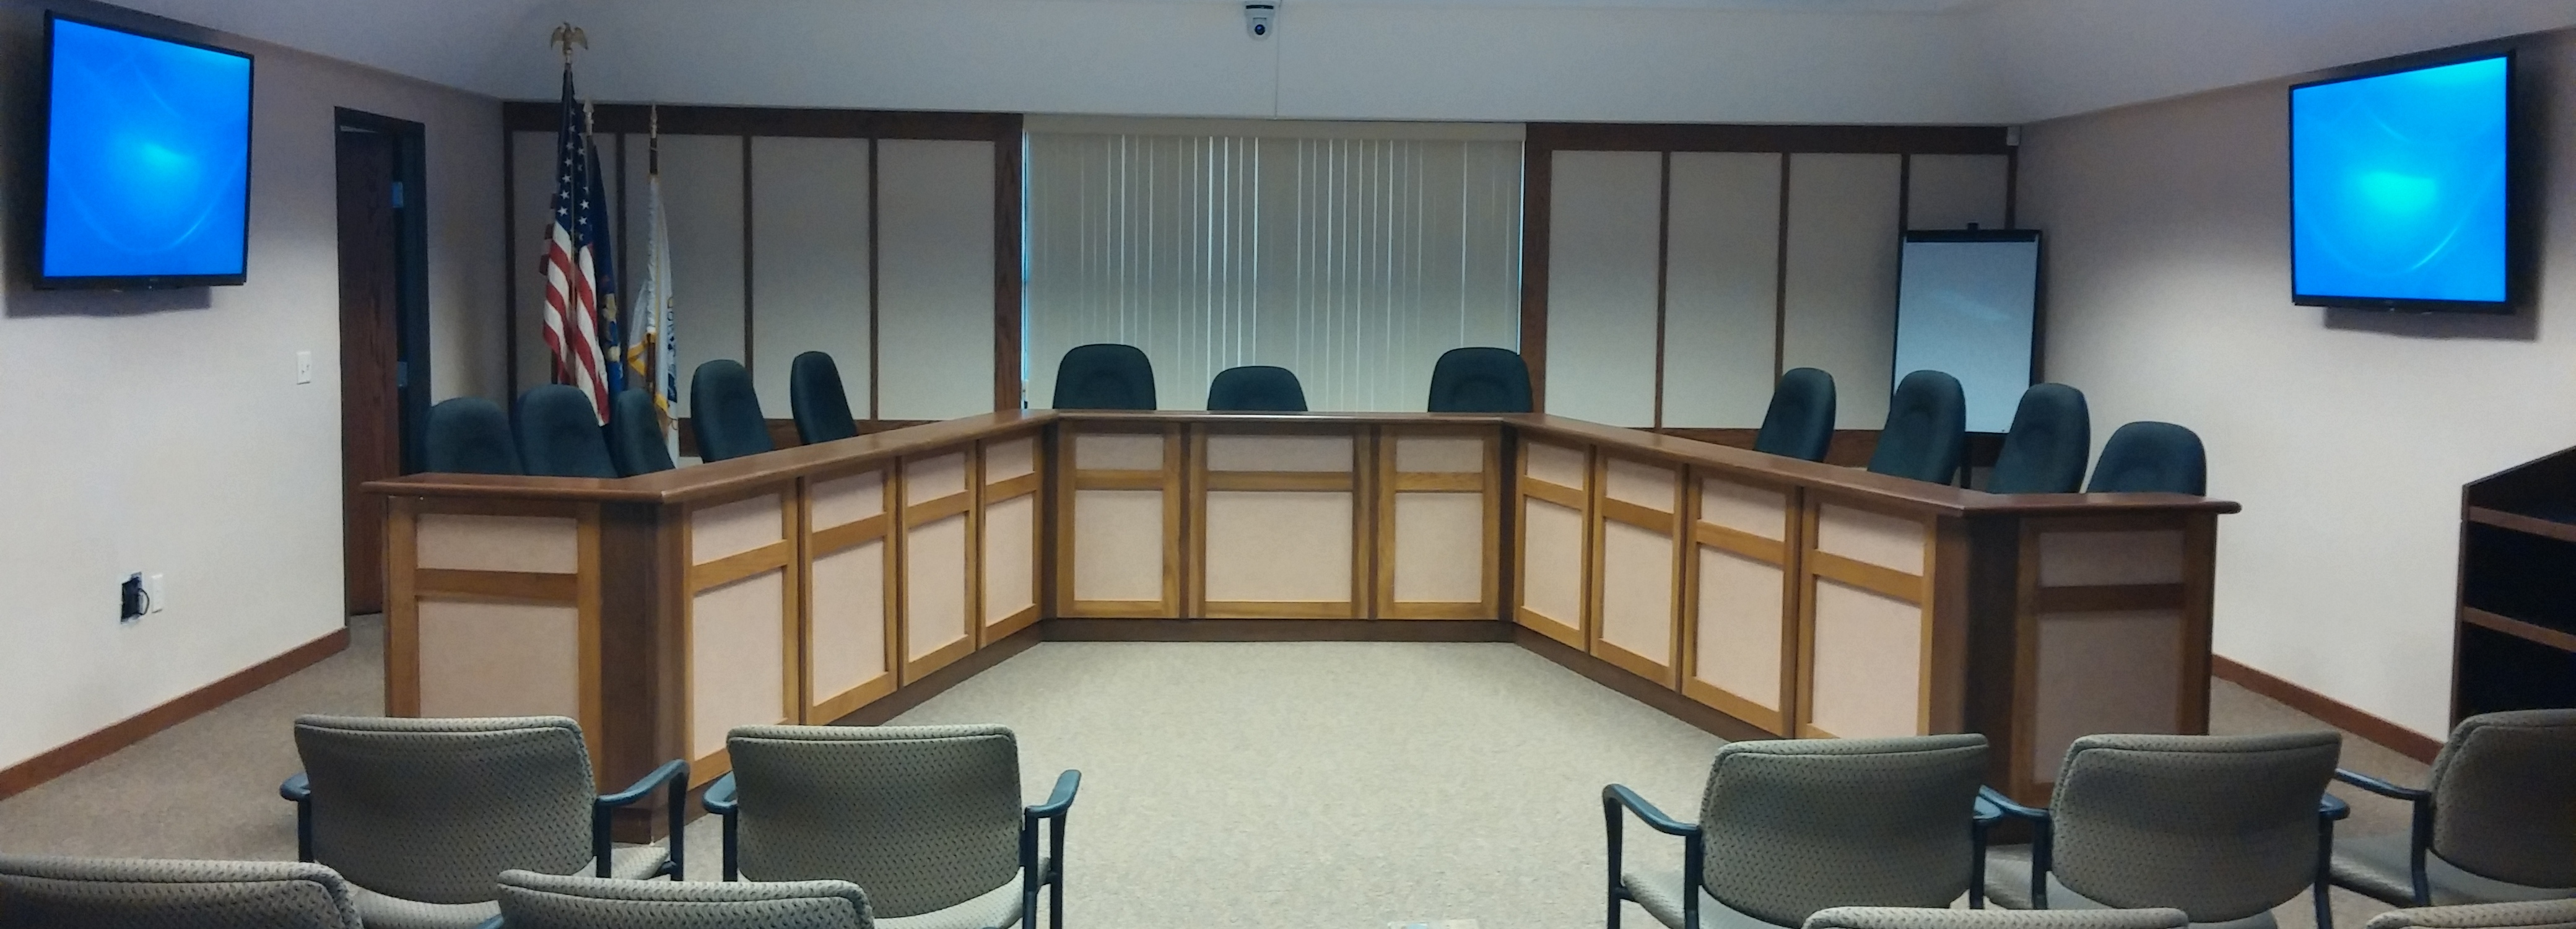 Huron-Board-room